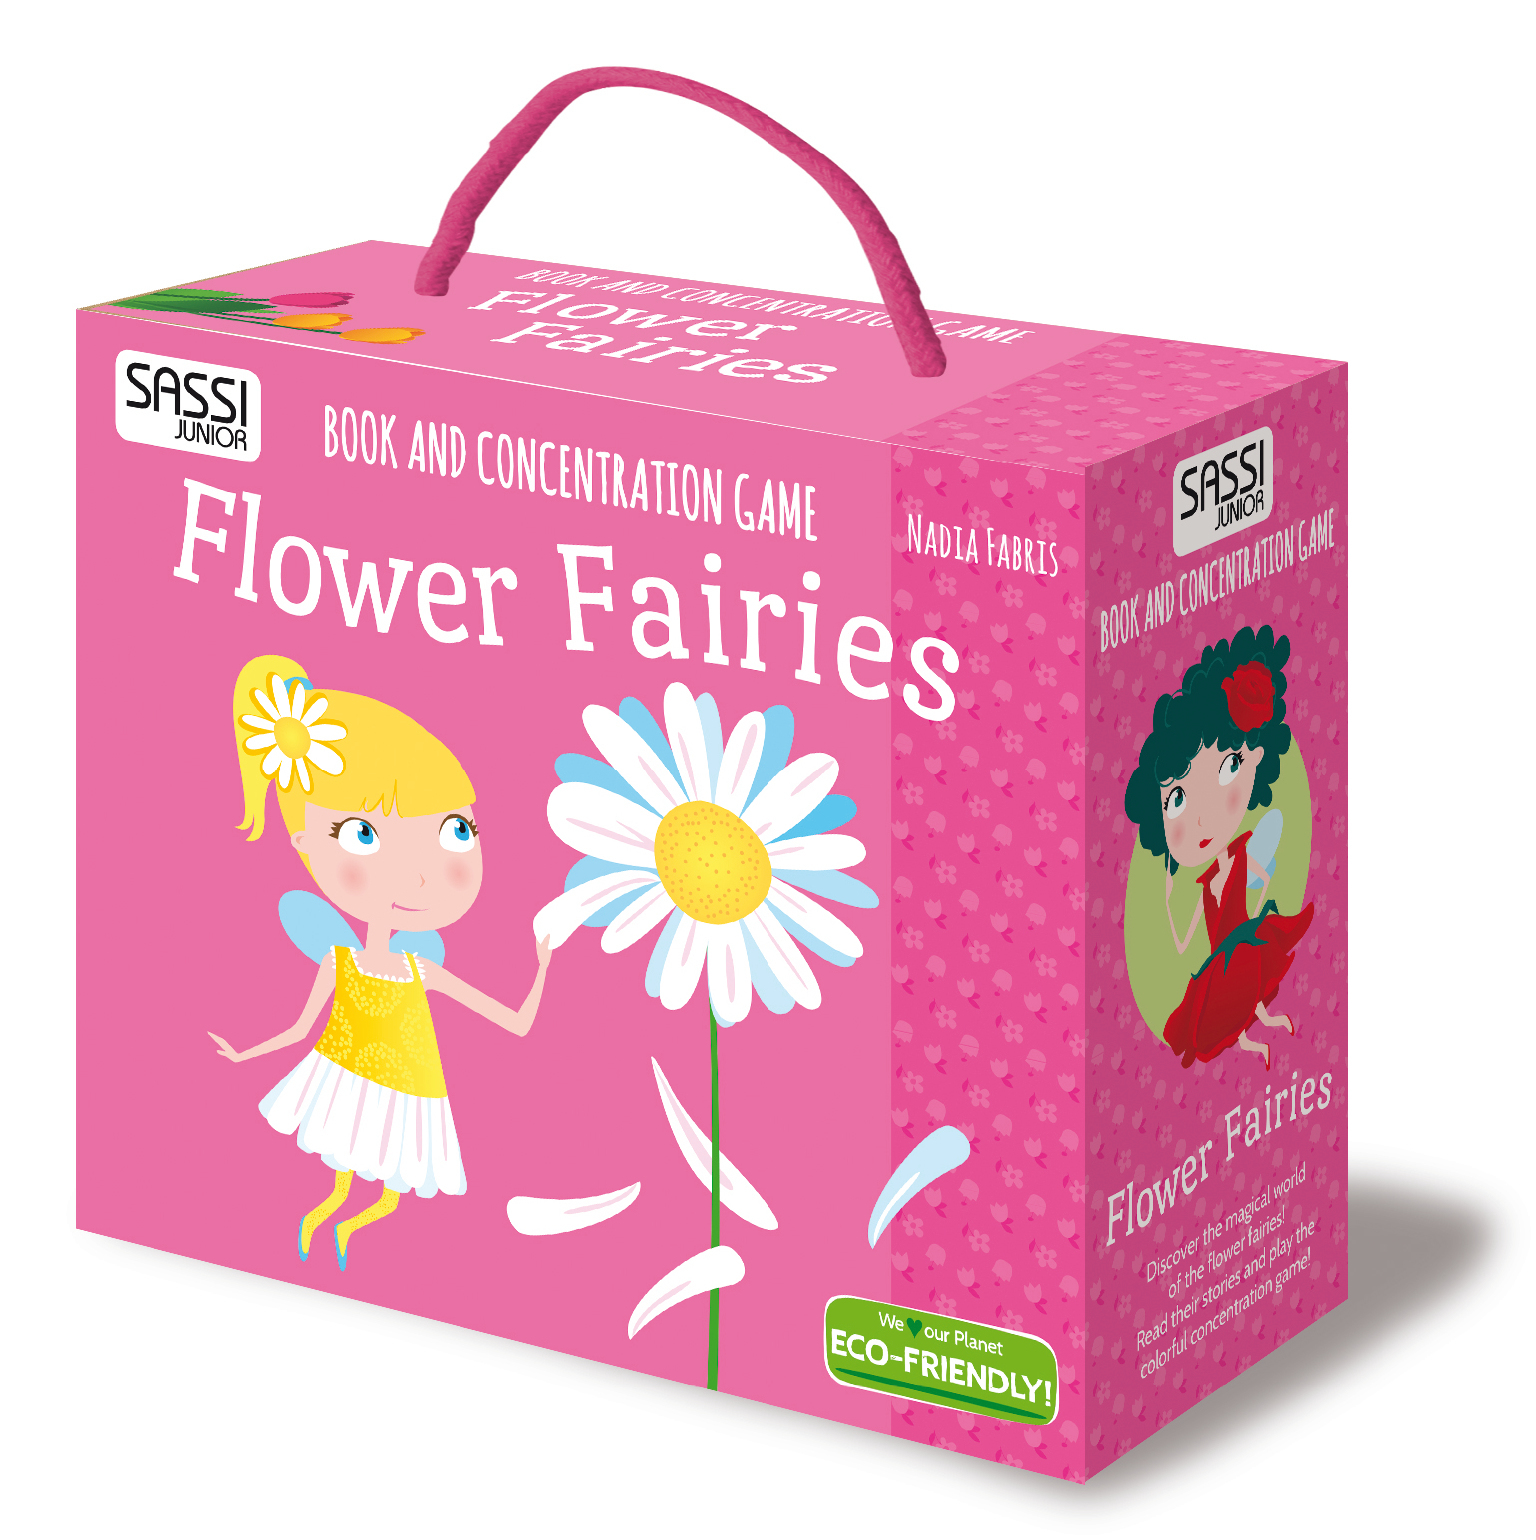 Sassi Book and Memory Matching Set (Flower Fairies) image